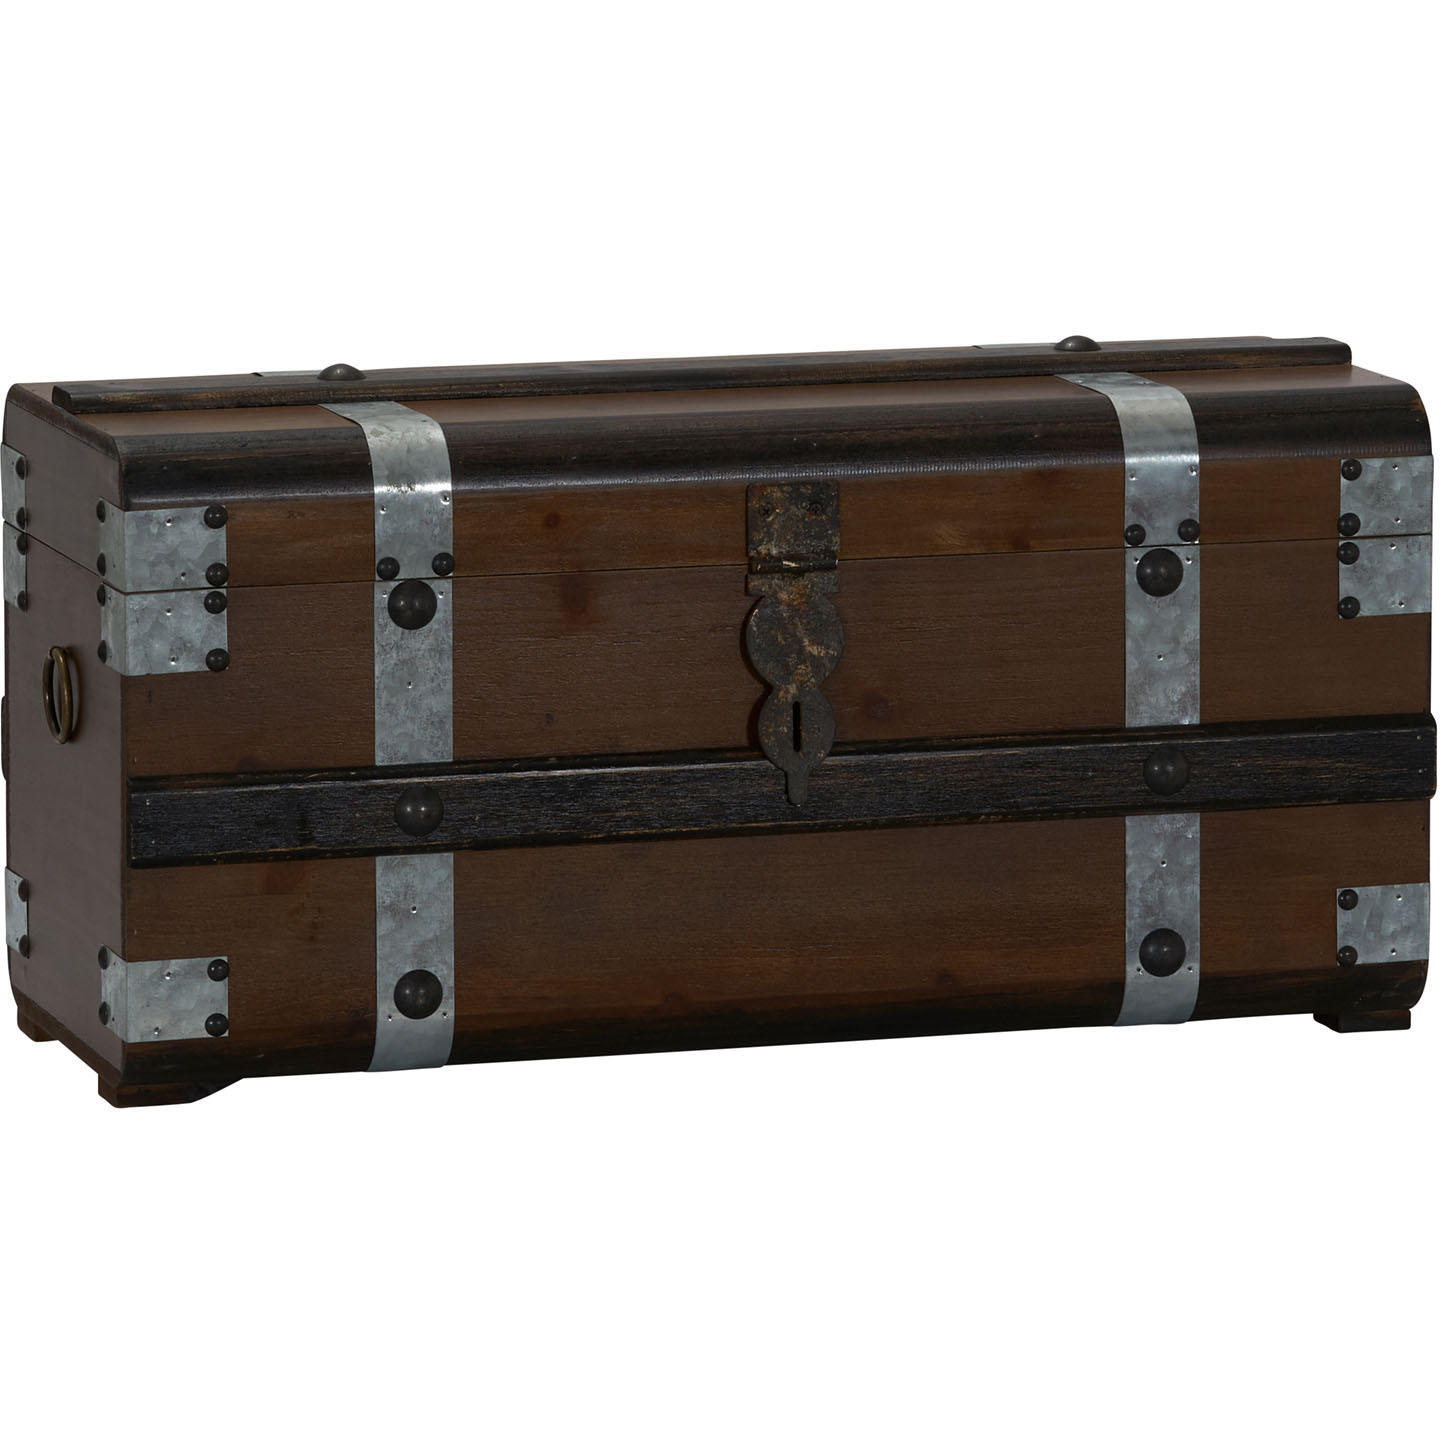 HOUSEHOLD ESSENTIALS Steel Band Wood Storage Trunk, Small